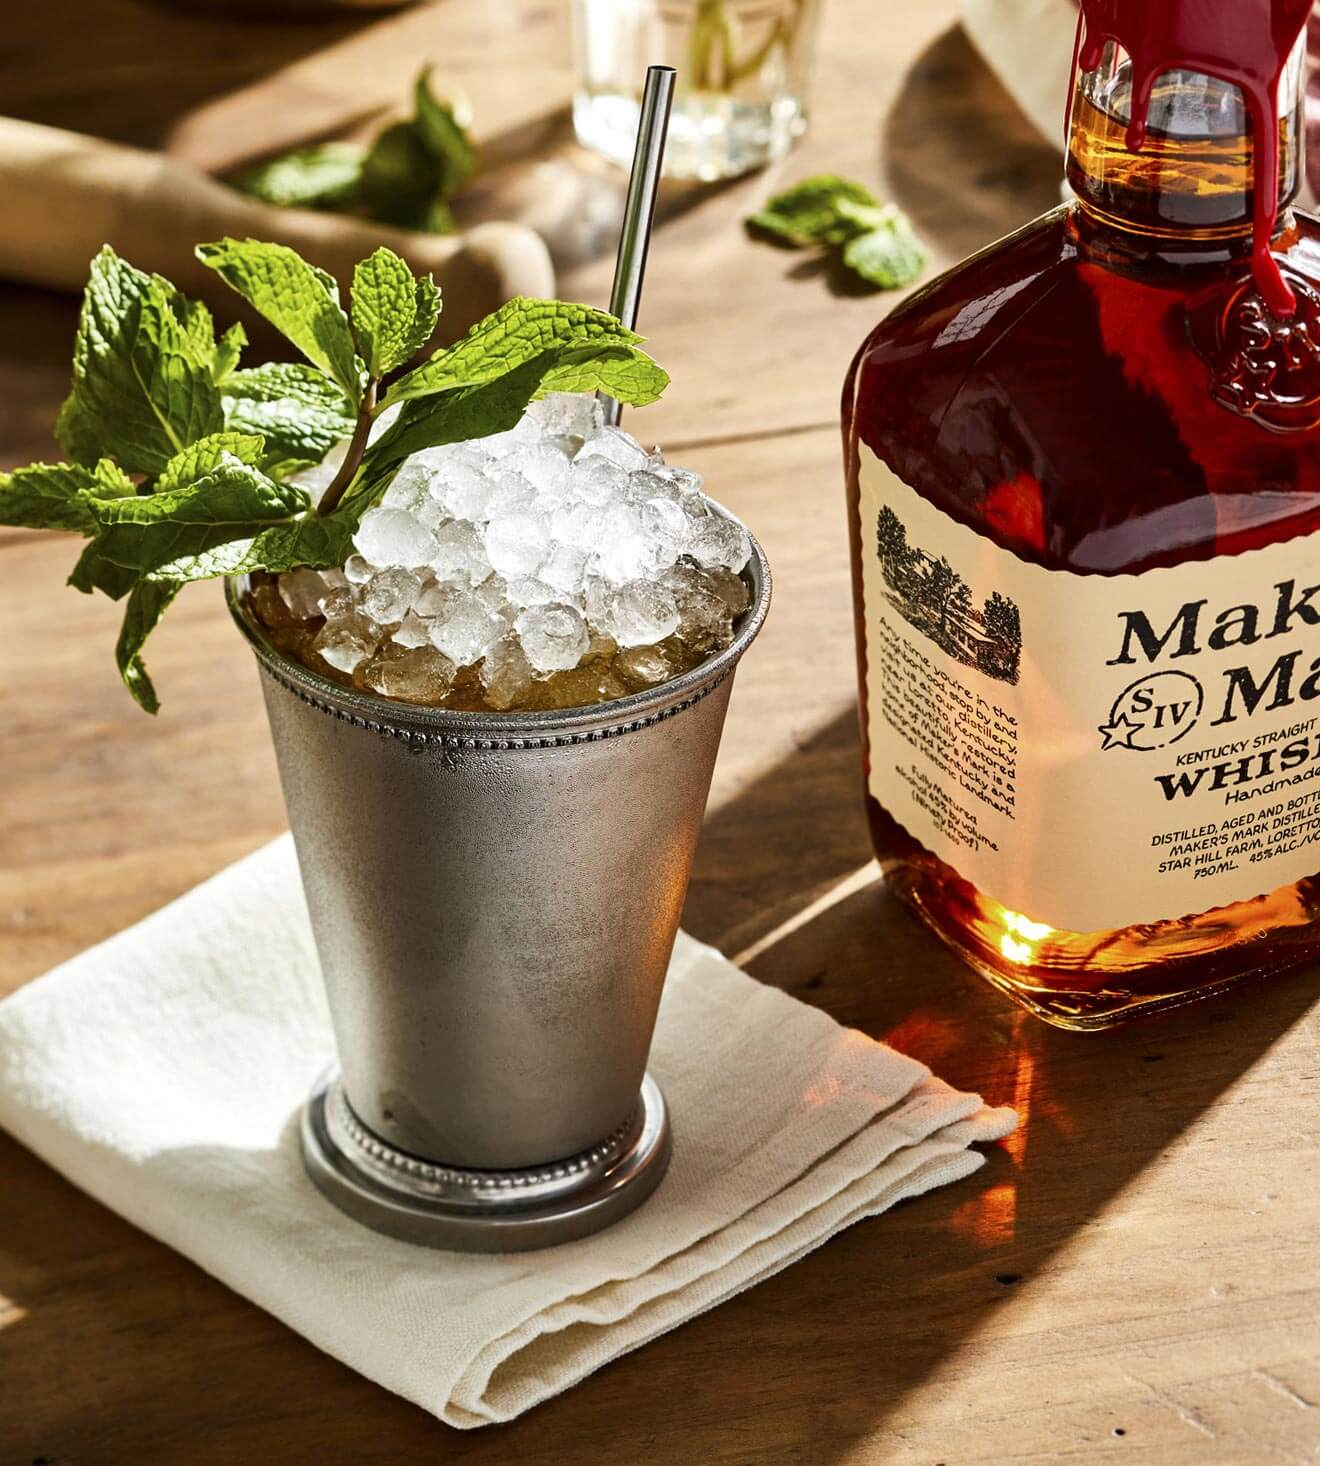 Mint Julep, makers mark bottle